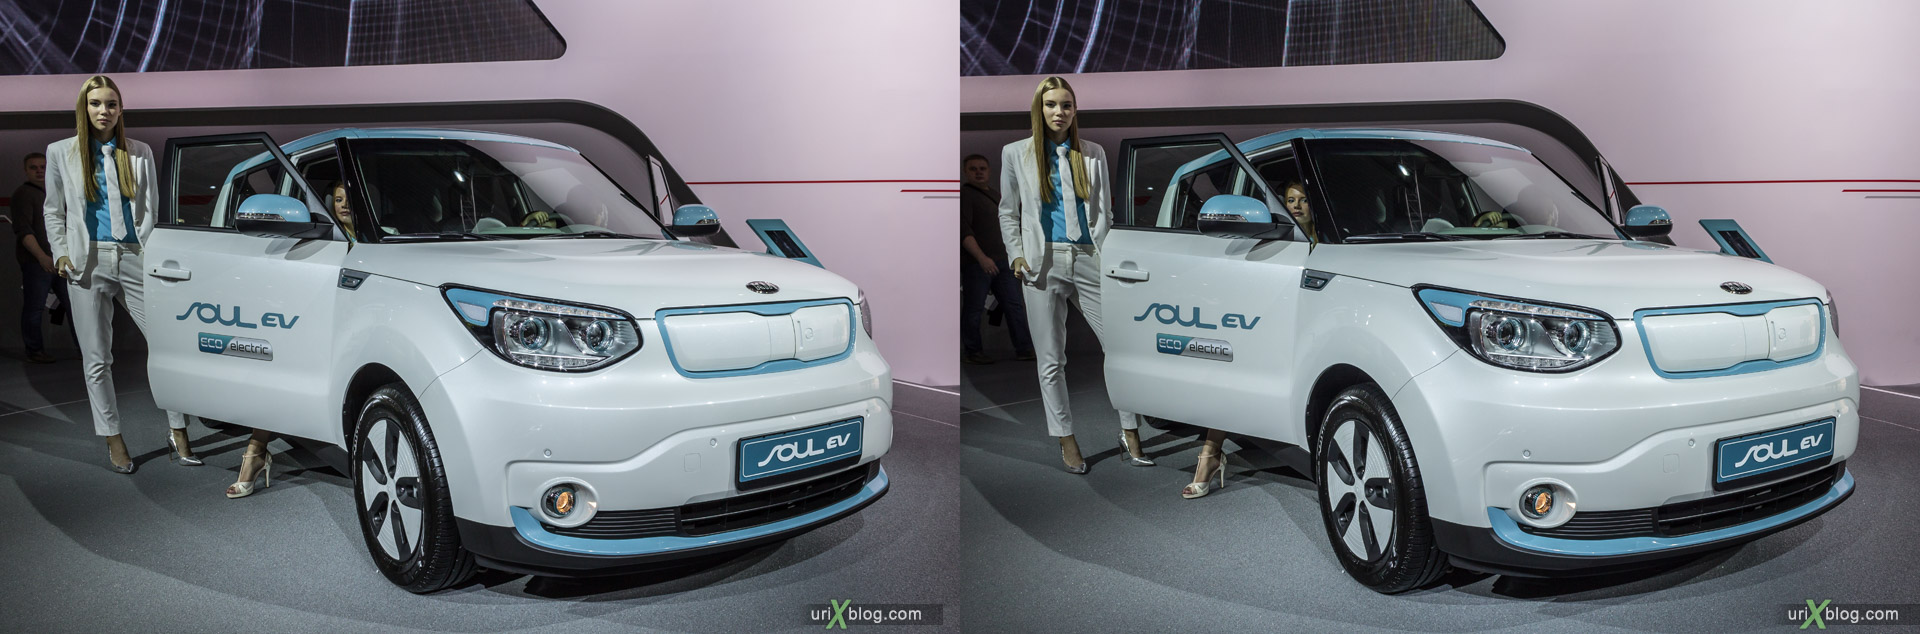 2014, Soul EV, Moscow International Automobile Salon, MIAS, Crocus Expo, Moscow, Russia, augest, 3D, stereo pair, cross-eyed, crossview, cross view stereo pair, stereoscopic